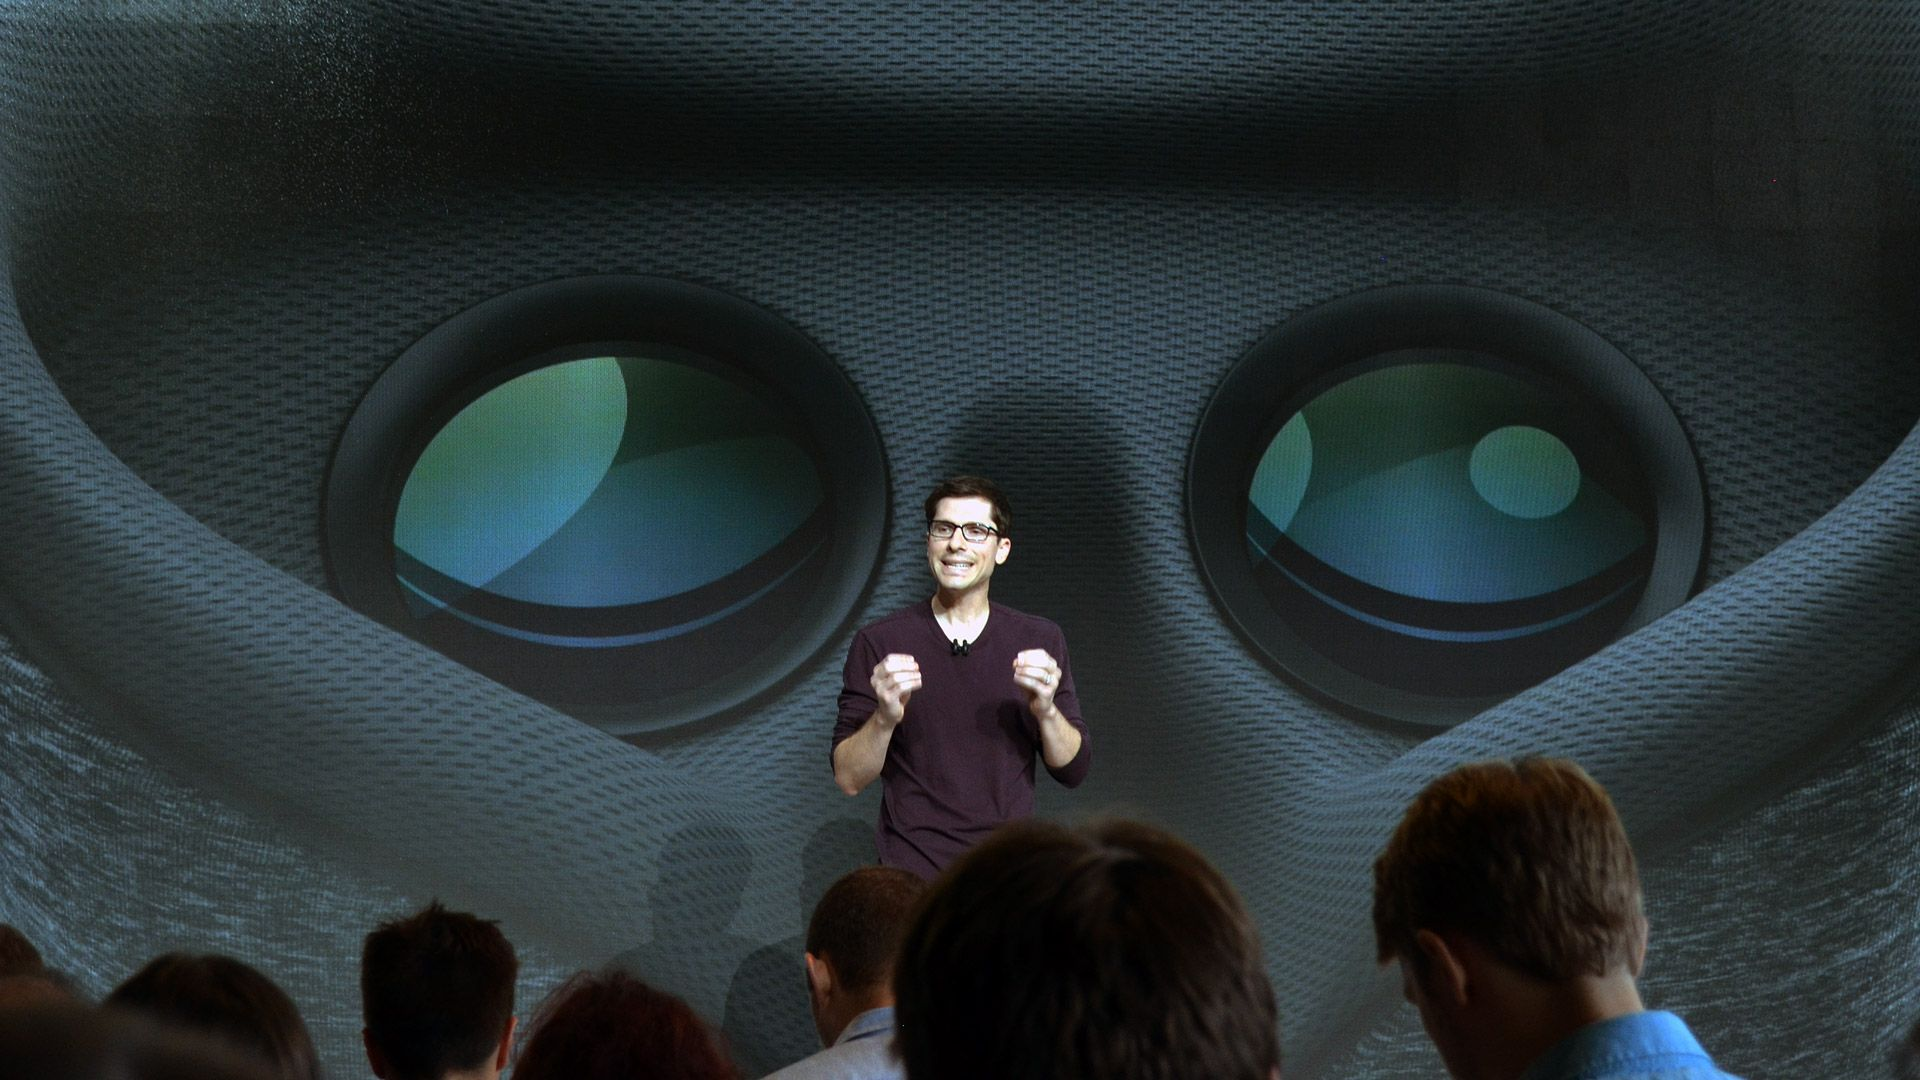 Google is Developing a VR Display With 10x More Pixels